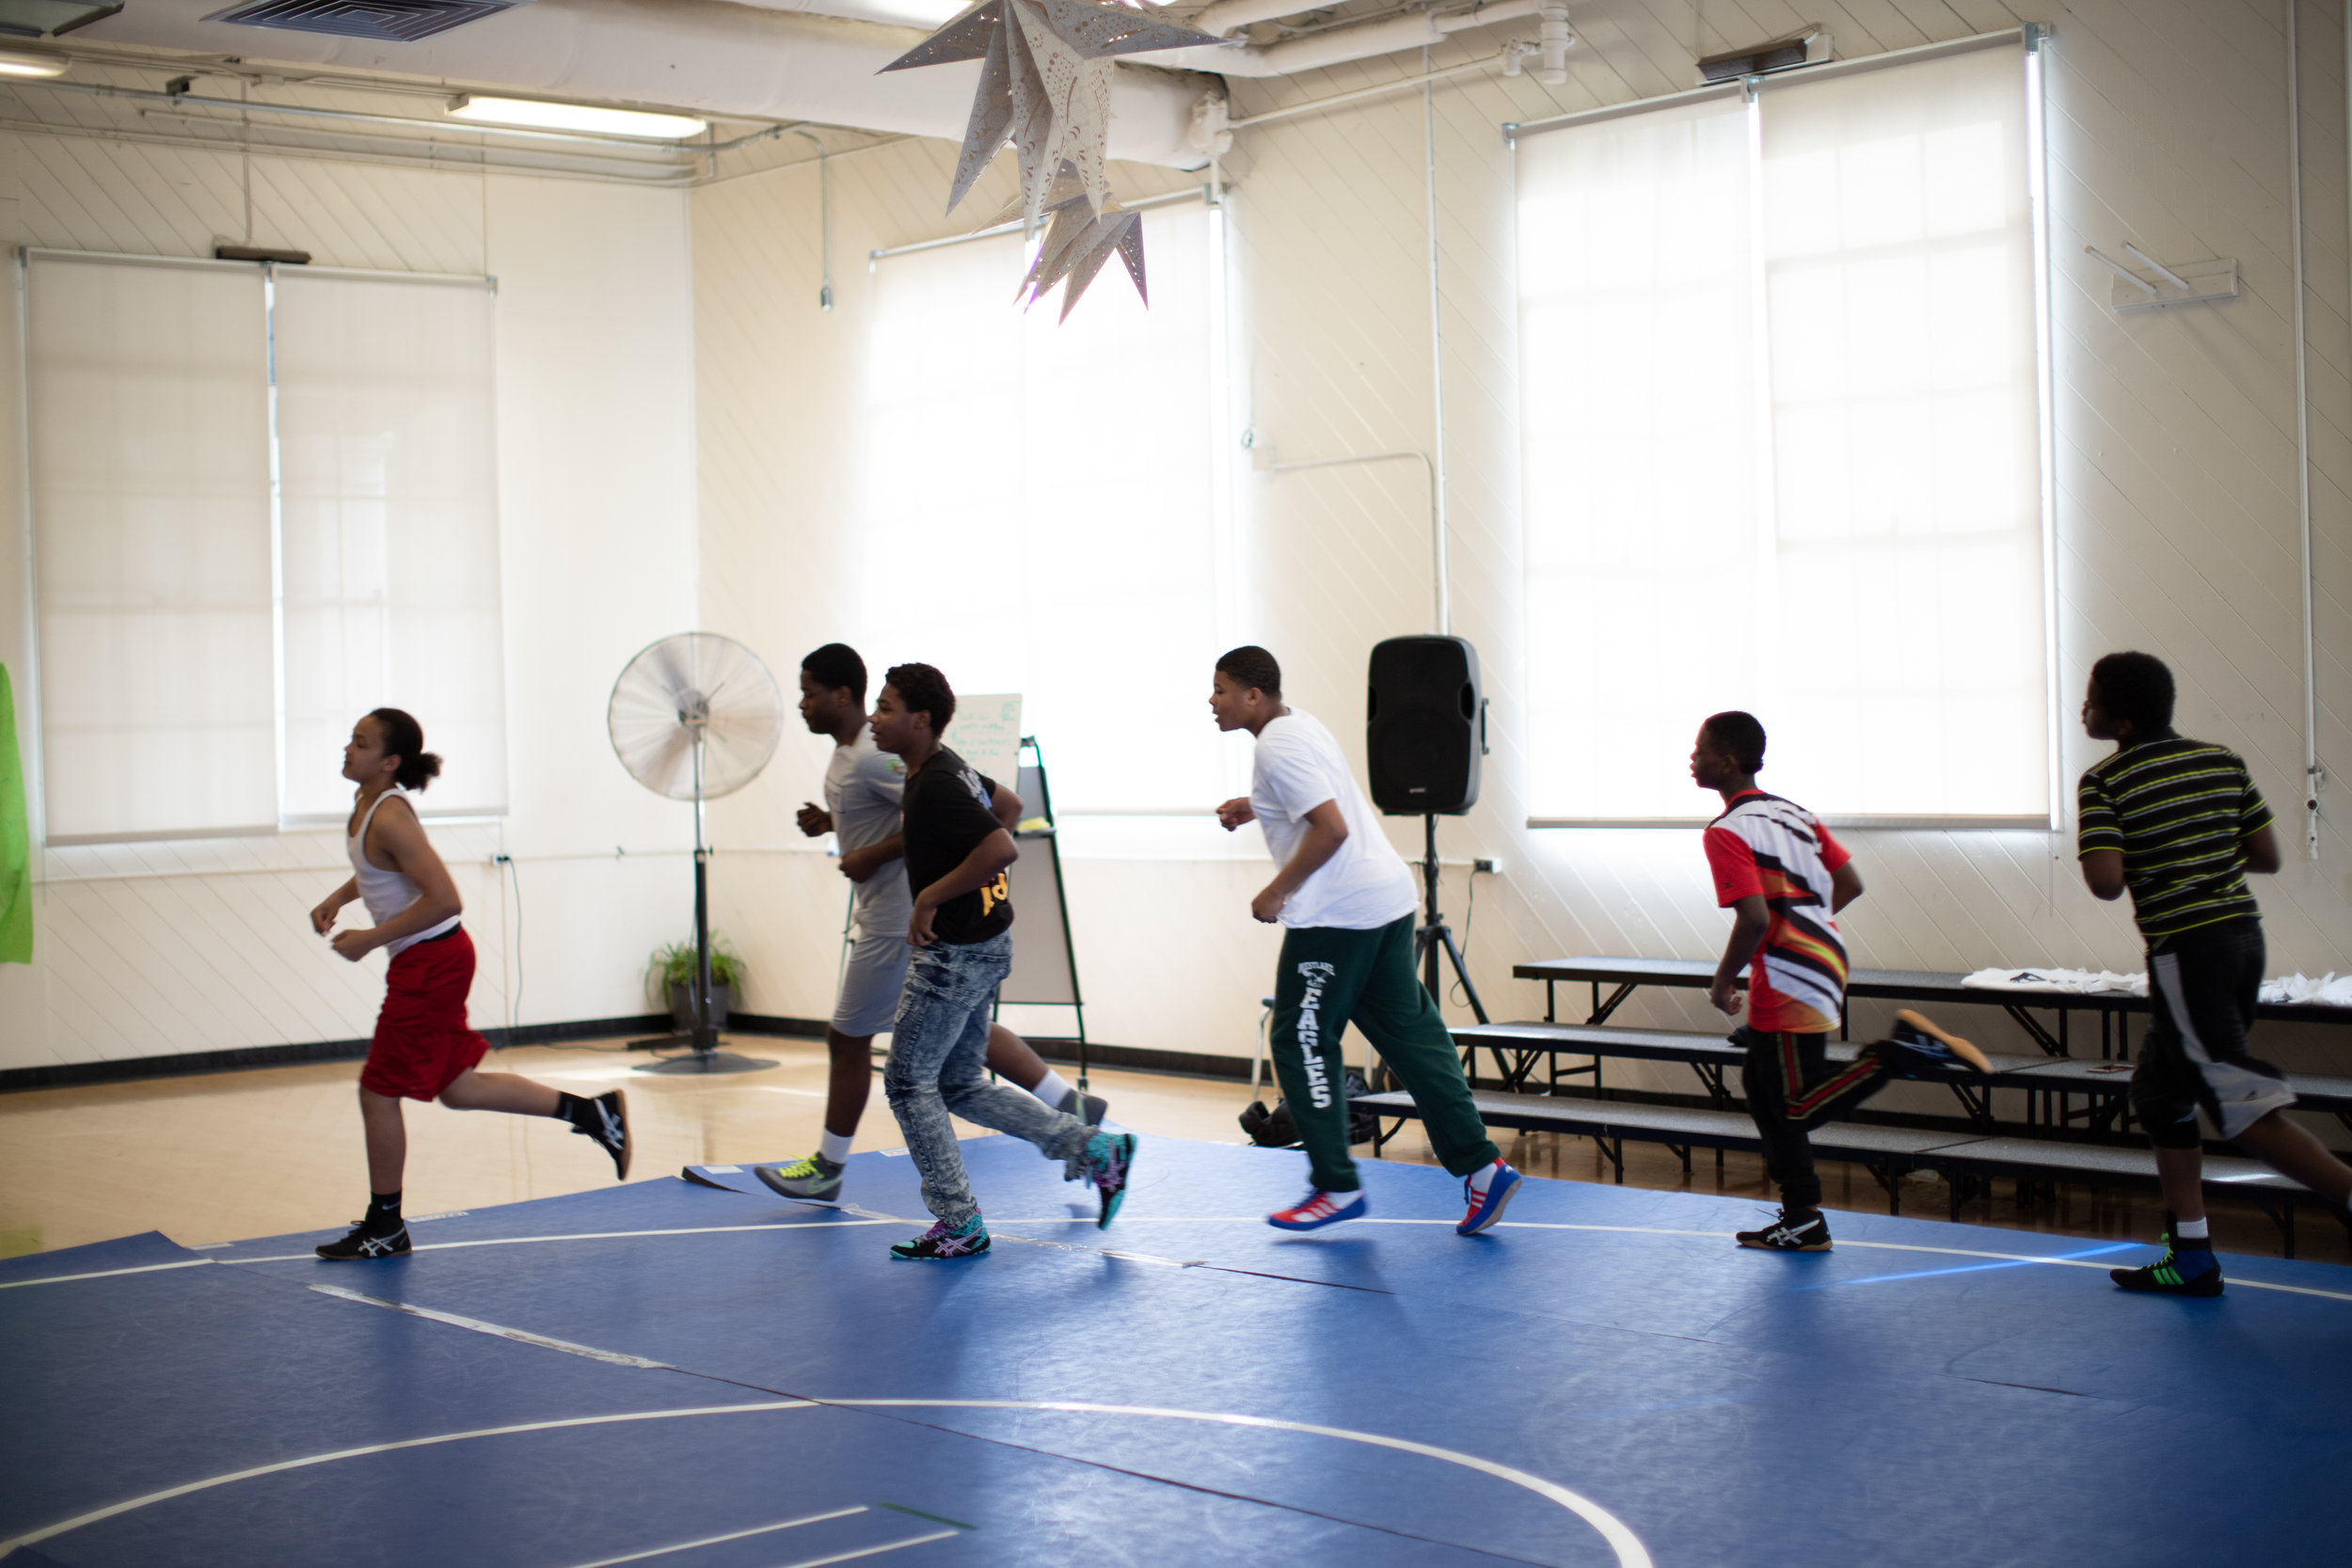 Some of the Westlake wrestlers warming up to start practice (photo by Leonardo Flores).